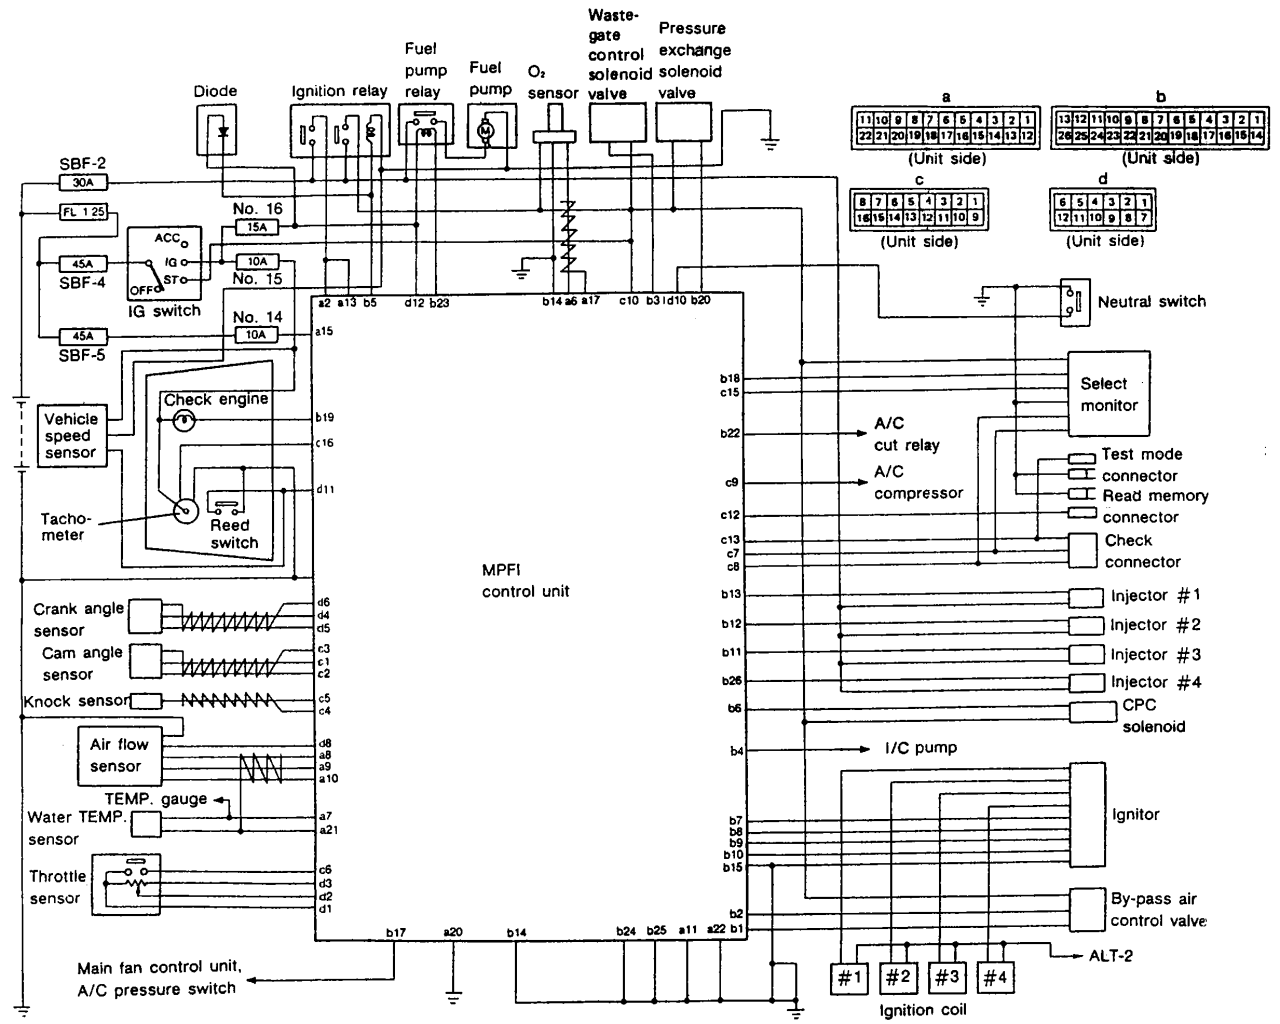 Wiring Diagram For 2007 Nissan Altima further Nissan Versa Wiper Motor Location in addition 93 Subaru Legacy Wiring Diagram moreover  on 2001 nissan sentra fuse box diagram